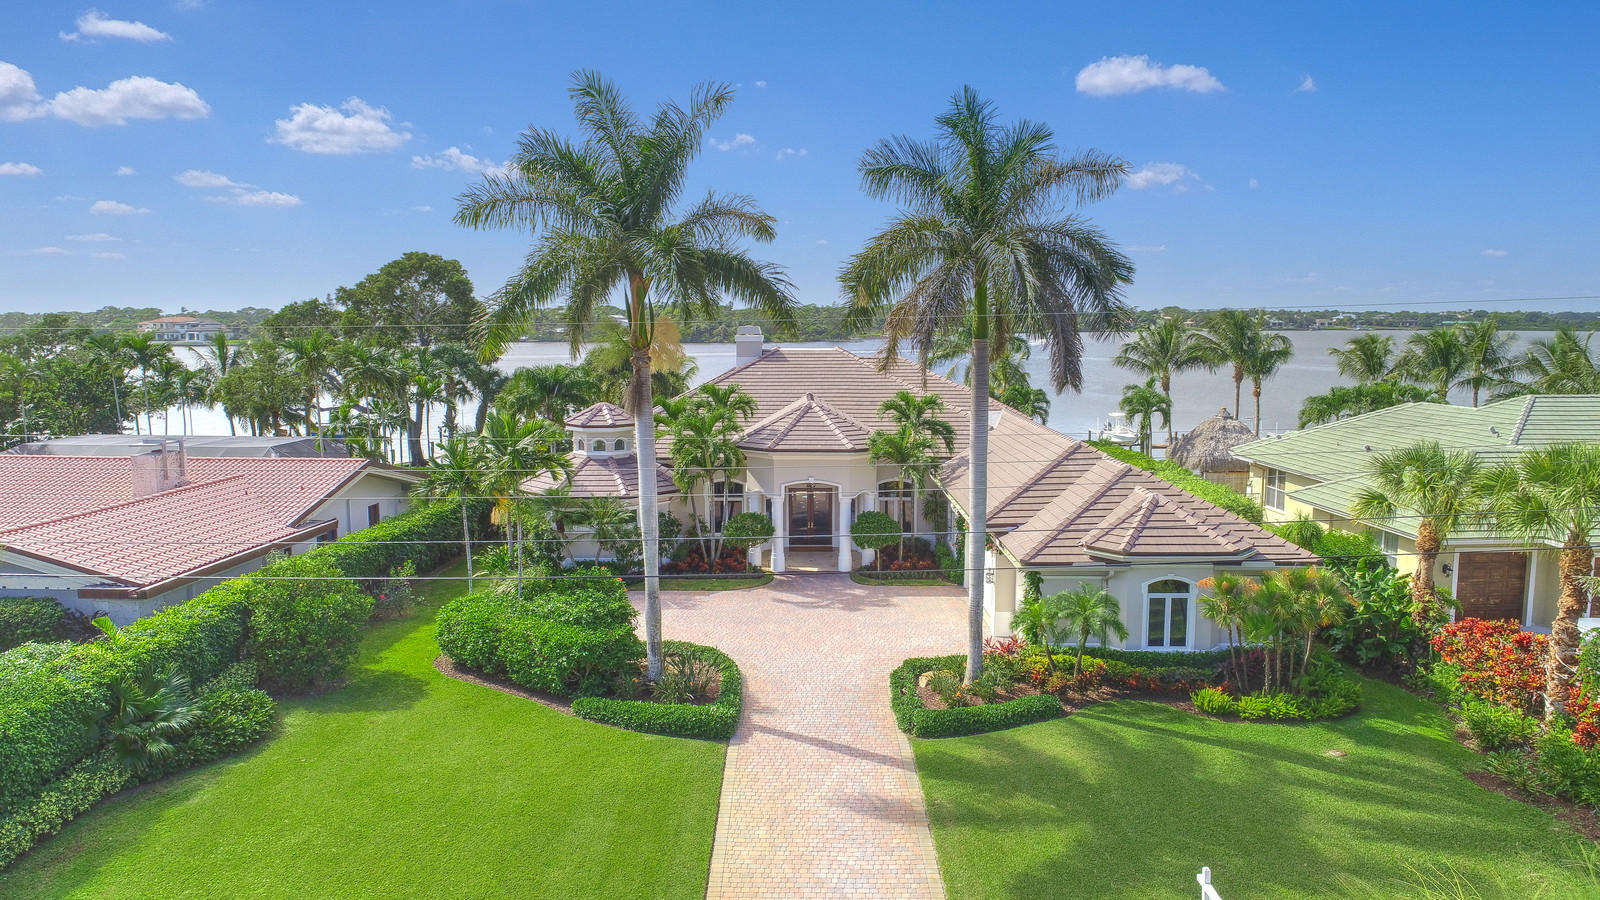 New Home for sale at 191 River Drive in Tequesta